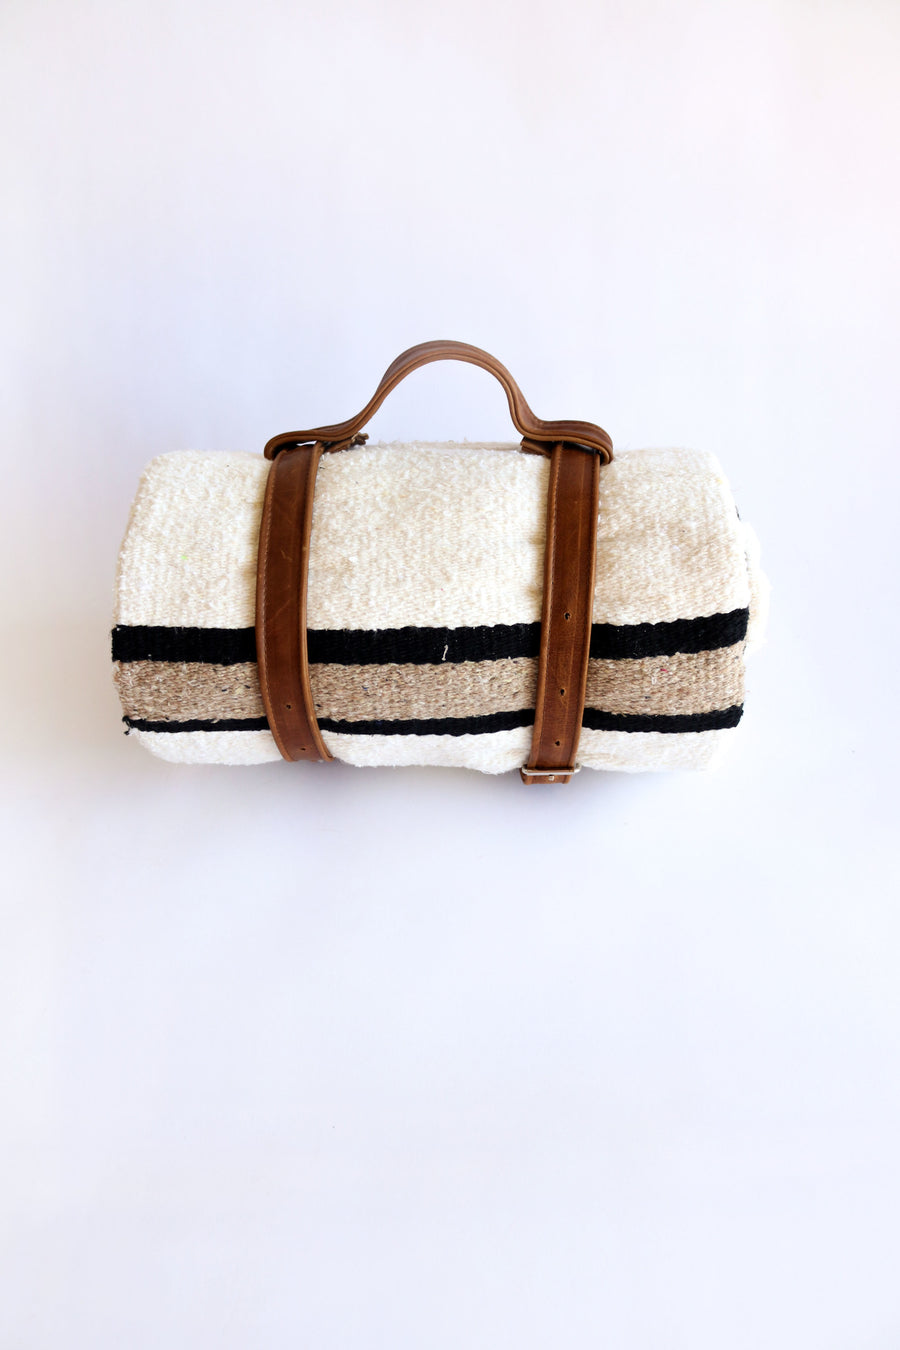 Tote (Espresso Color) // Handcrafted Blanket Holder